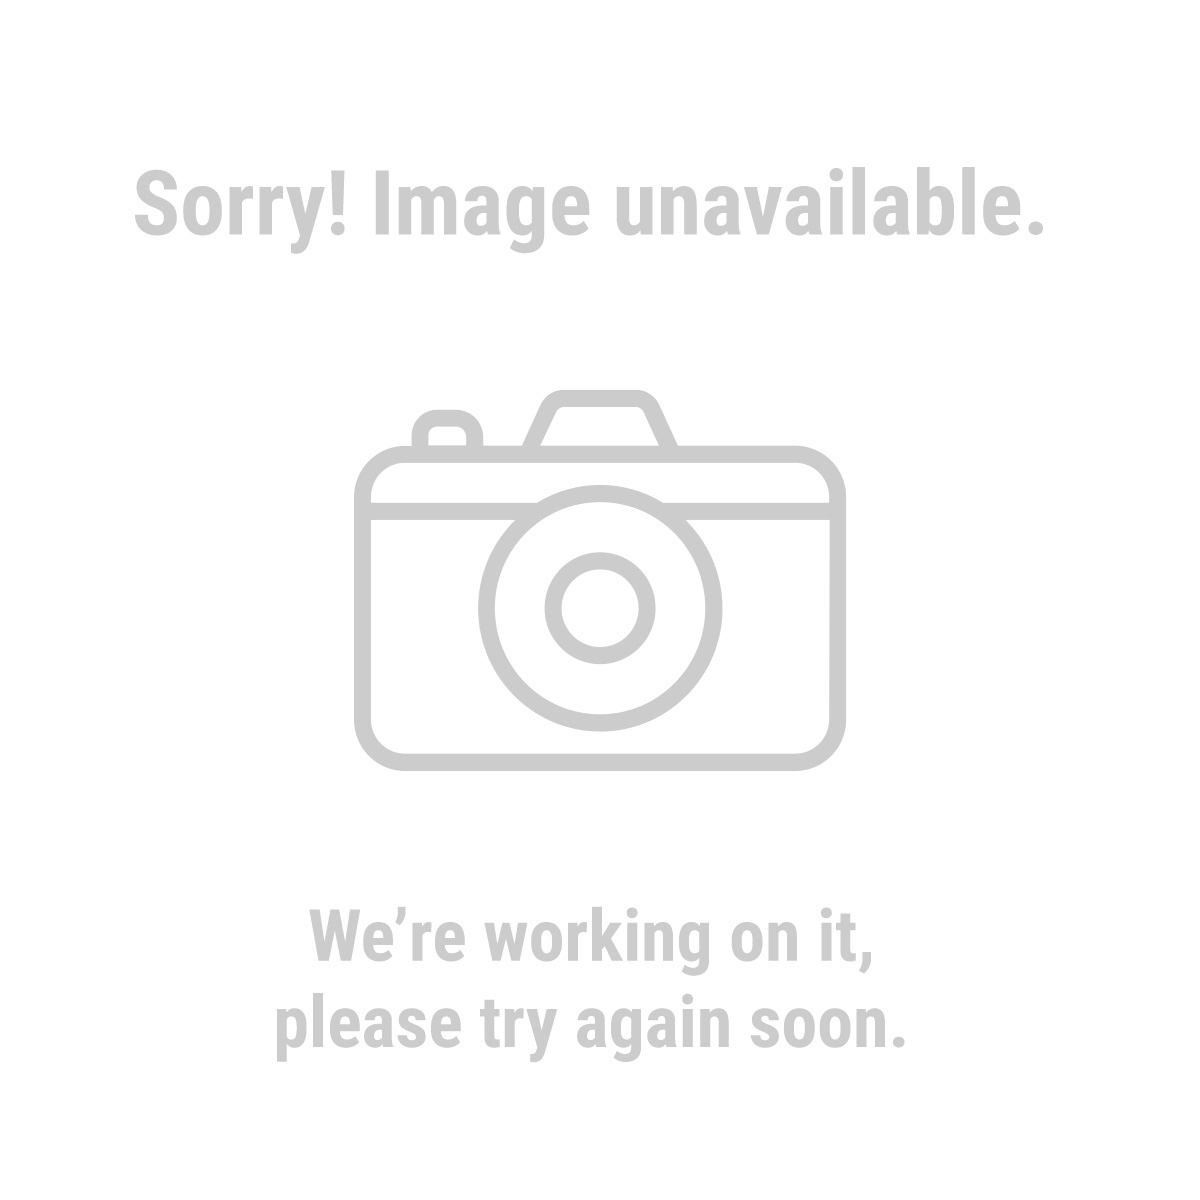 "Warrior 68326 4-1/2"" 40 Grit Zirconia Flap Disc"